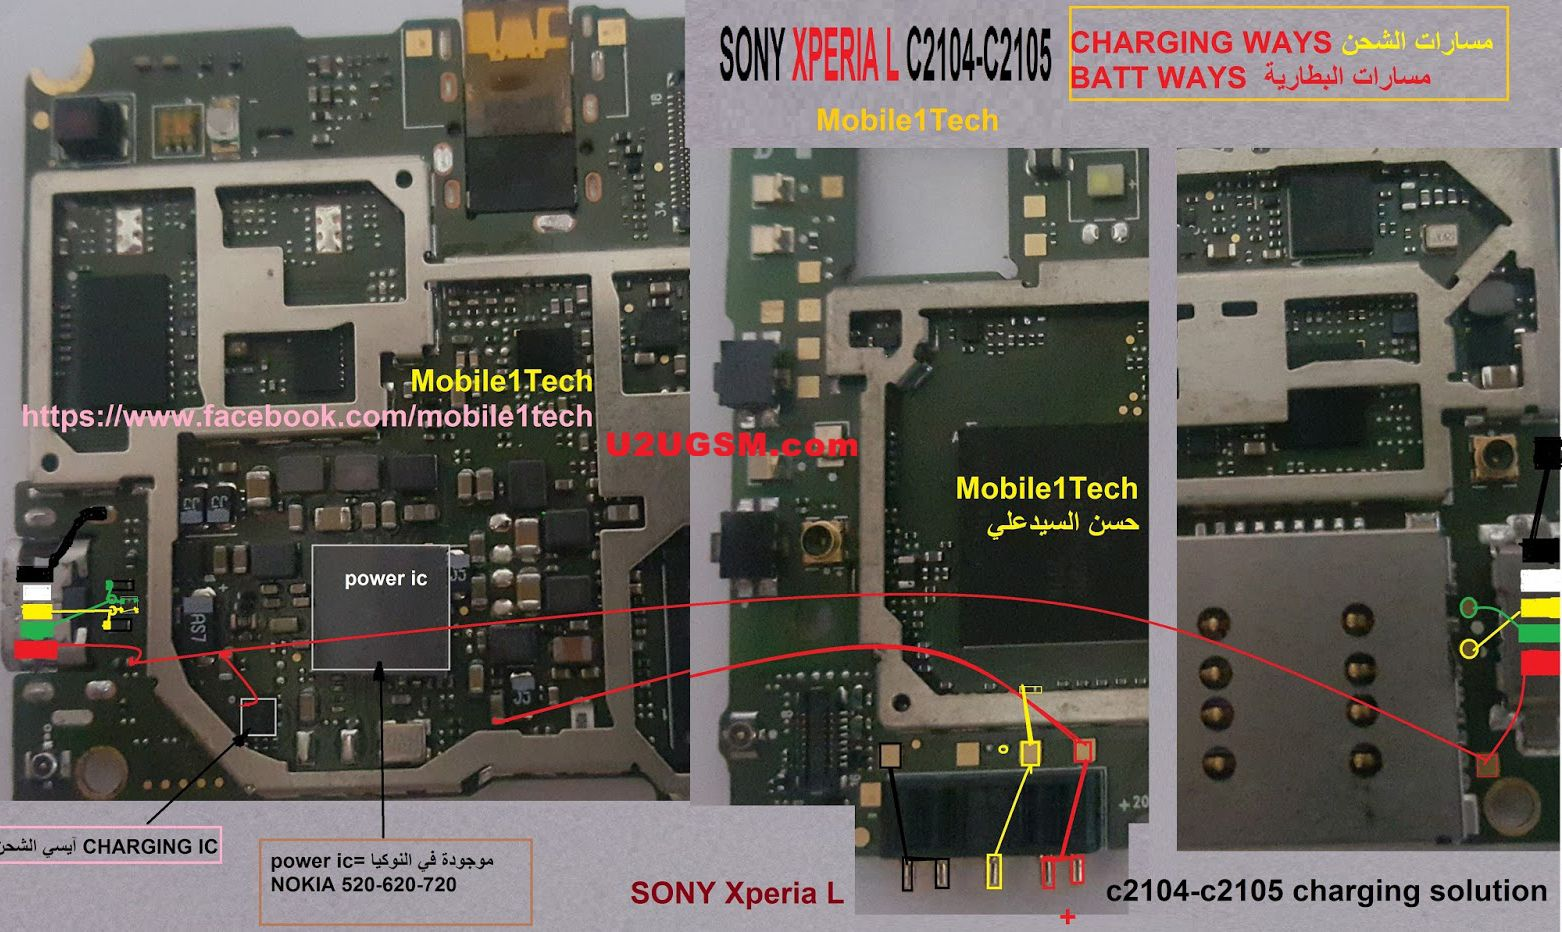 medium resolution of sony xperia p circuit diagram wiring library sony xperia st25i schematic diagram sony xperia l circuit diagram